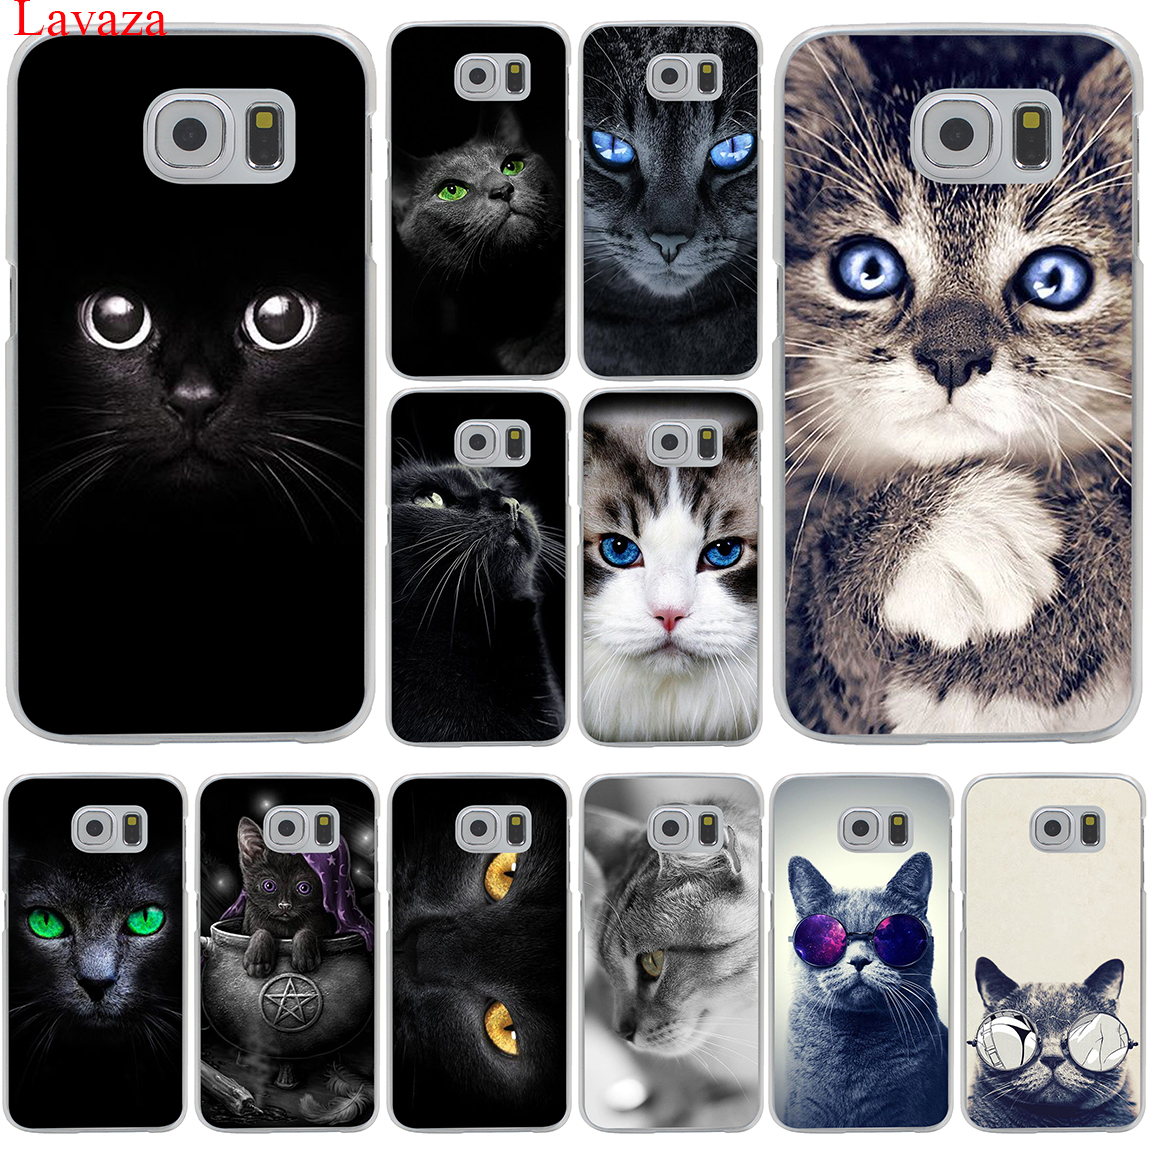 Lavaza Black Cat Staring Eyes Hard Transparent Phone <font><b>Case</b></font> for Samsung Galaxy S10 E S10E S8 S9 Plus S6 S7 Edge Cover image